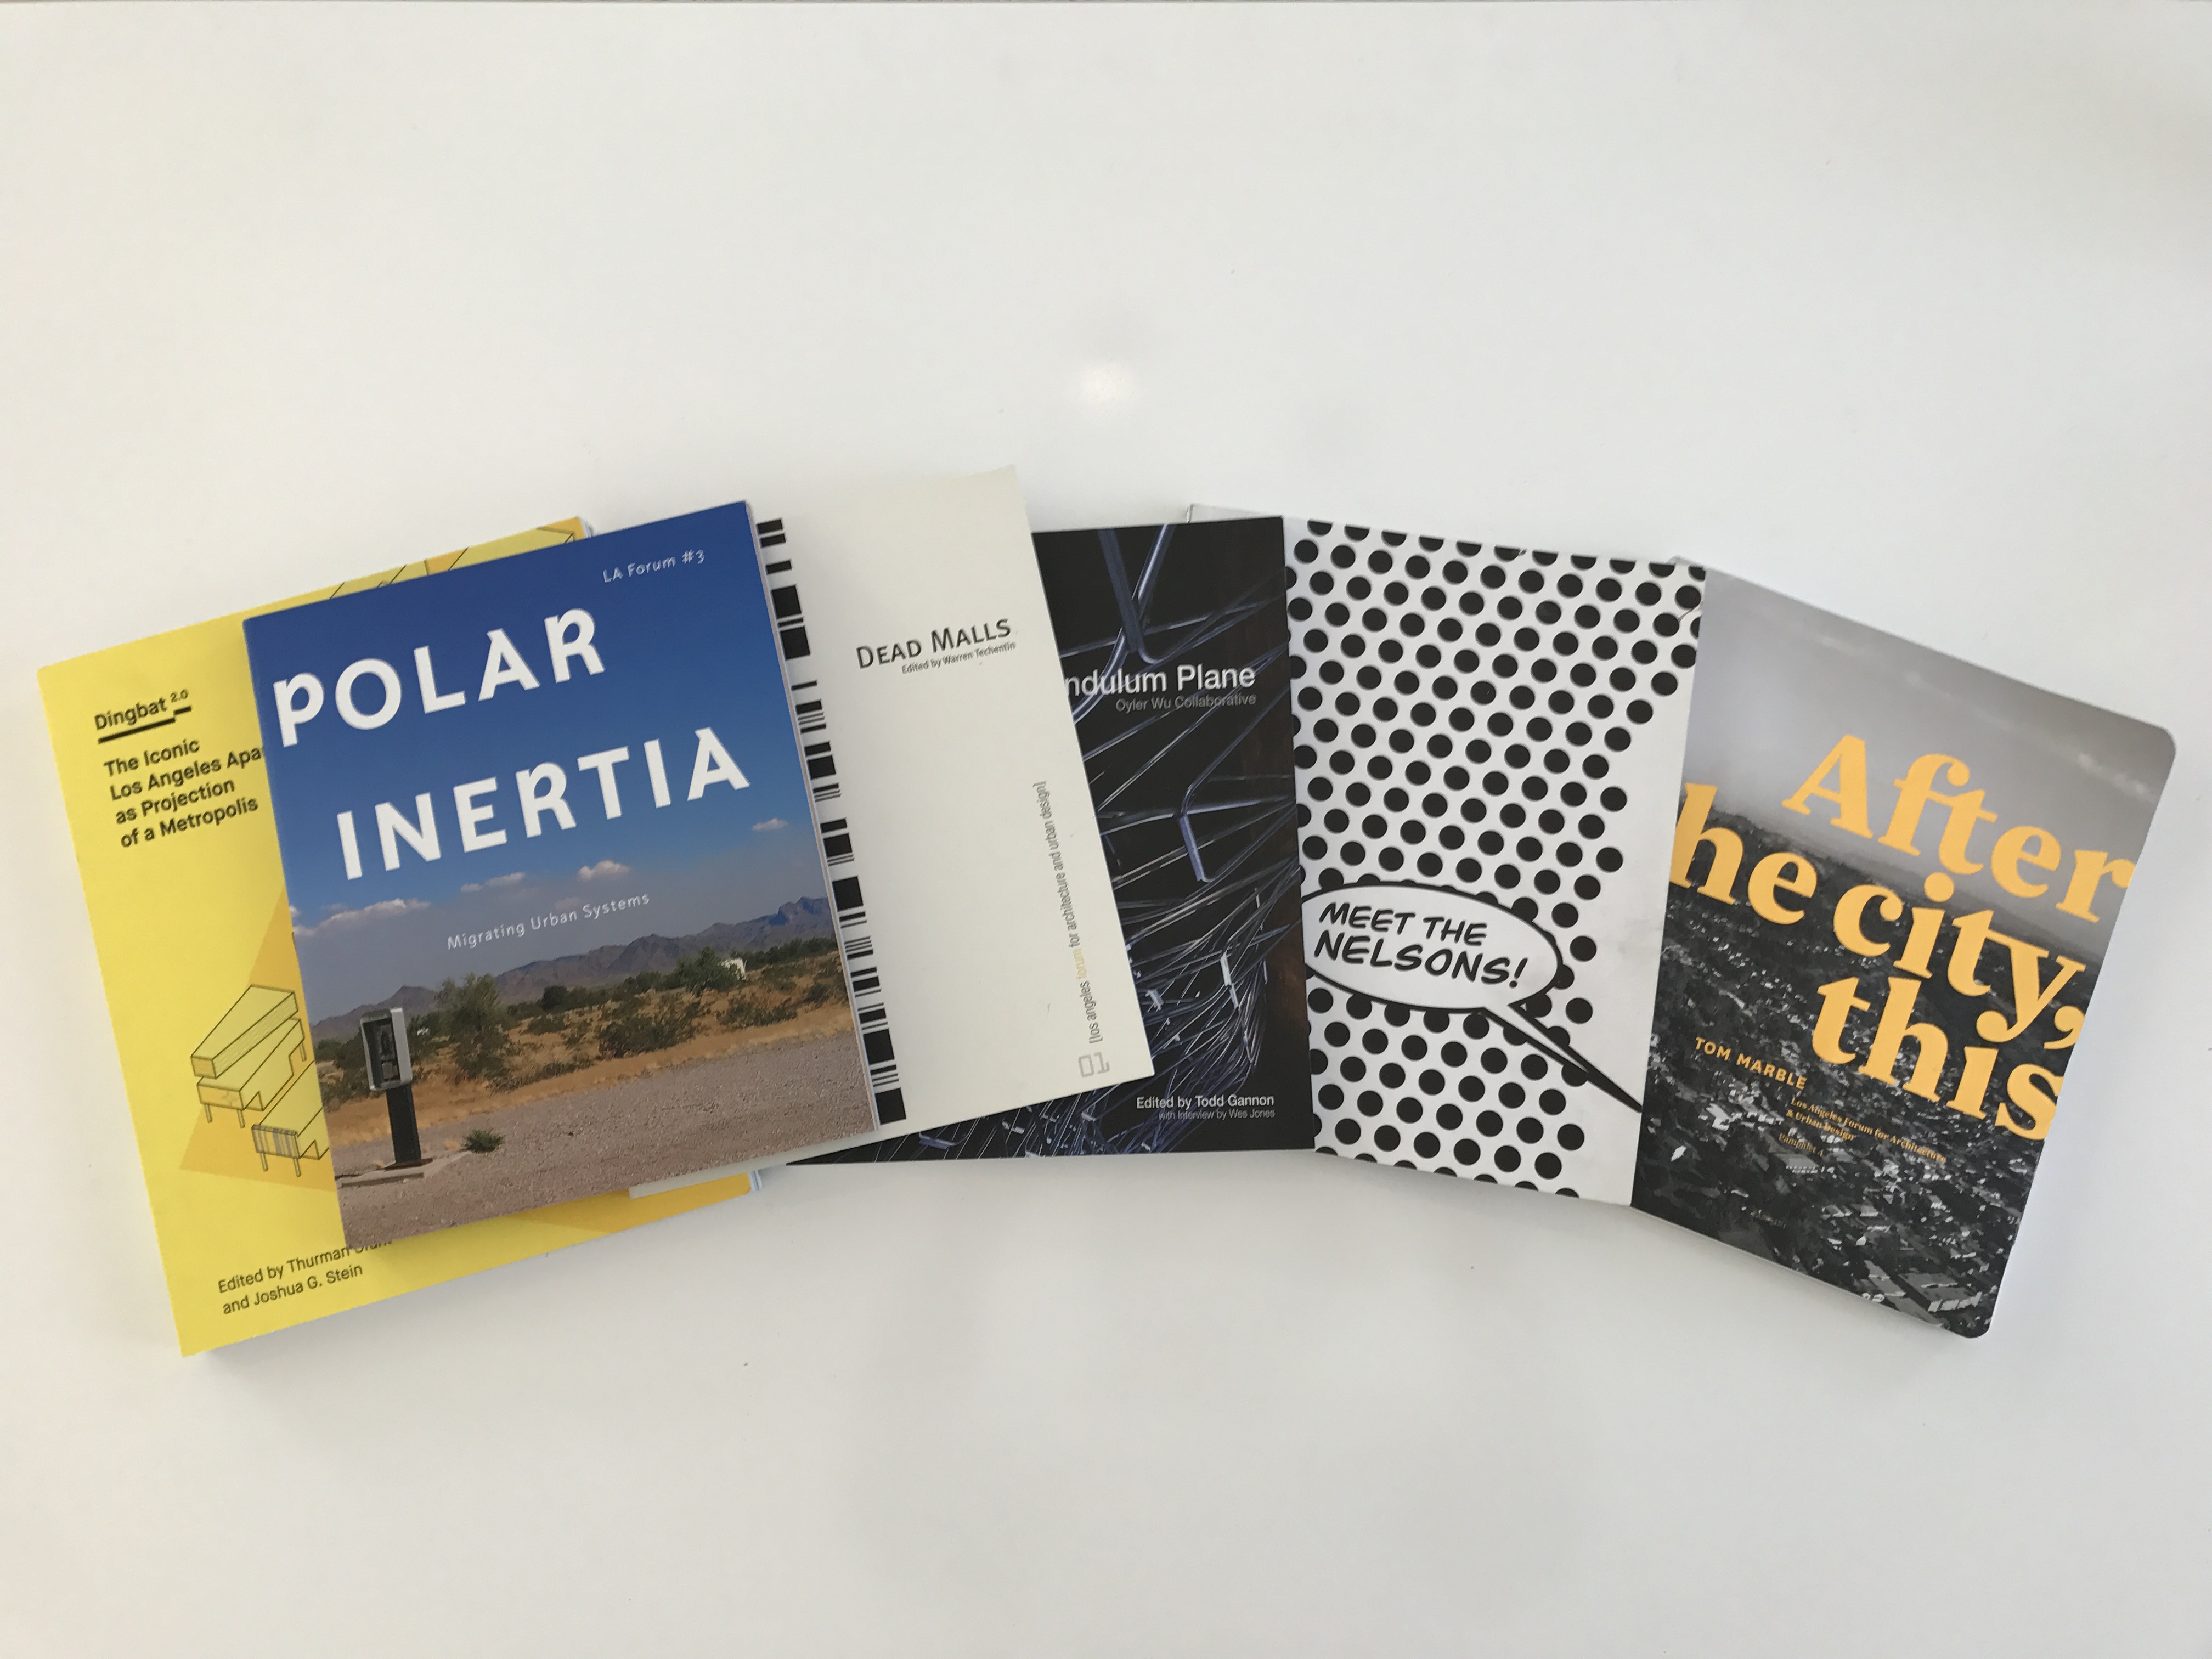 Image LA Forum Competitions And Publications Made Possible Through NEA Grants